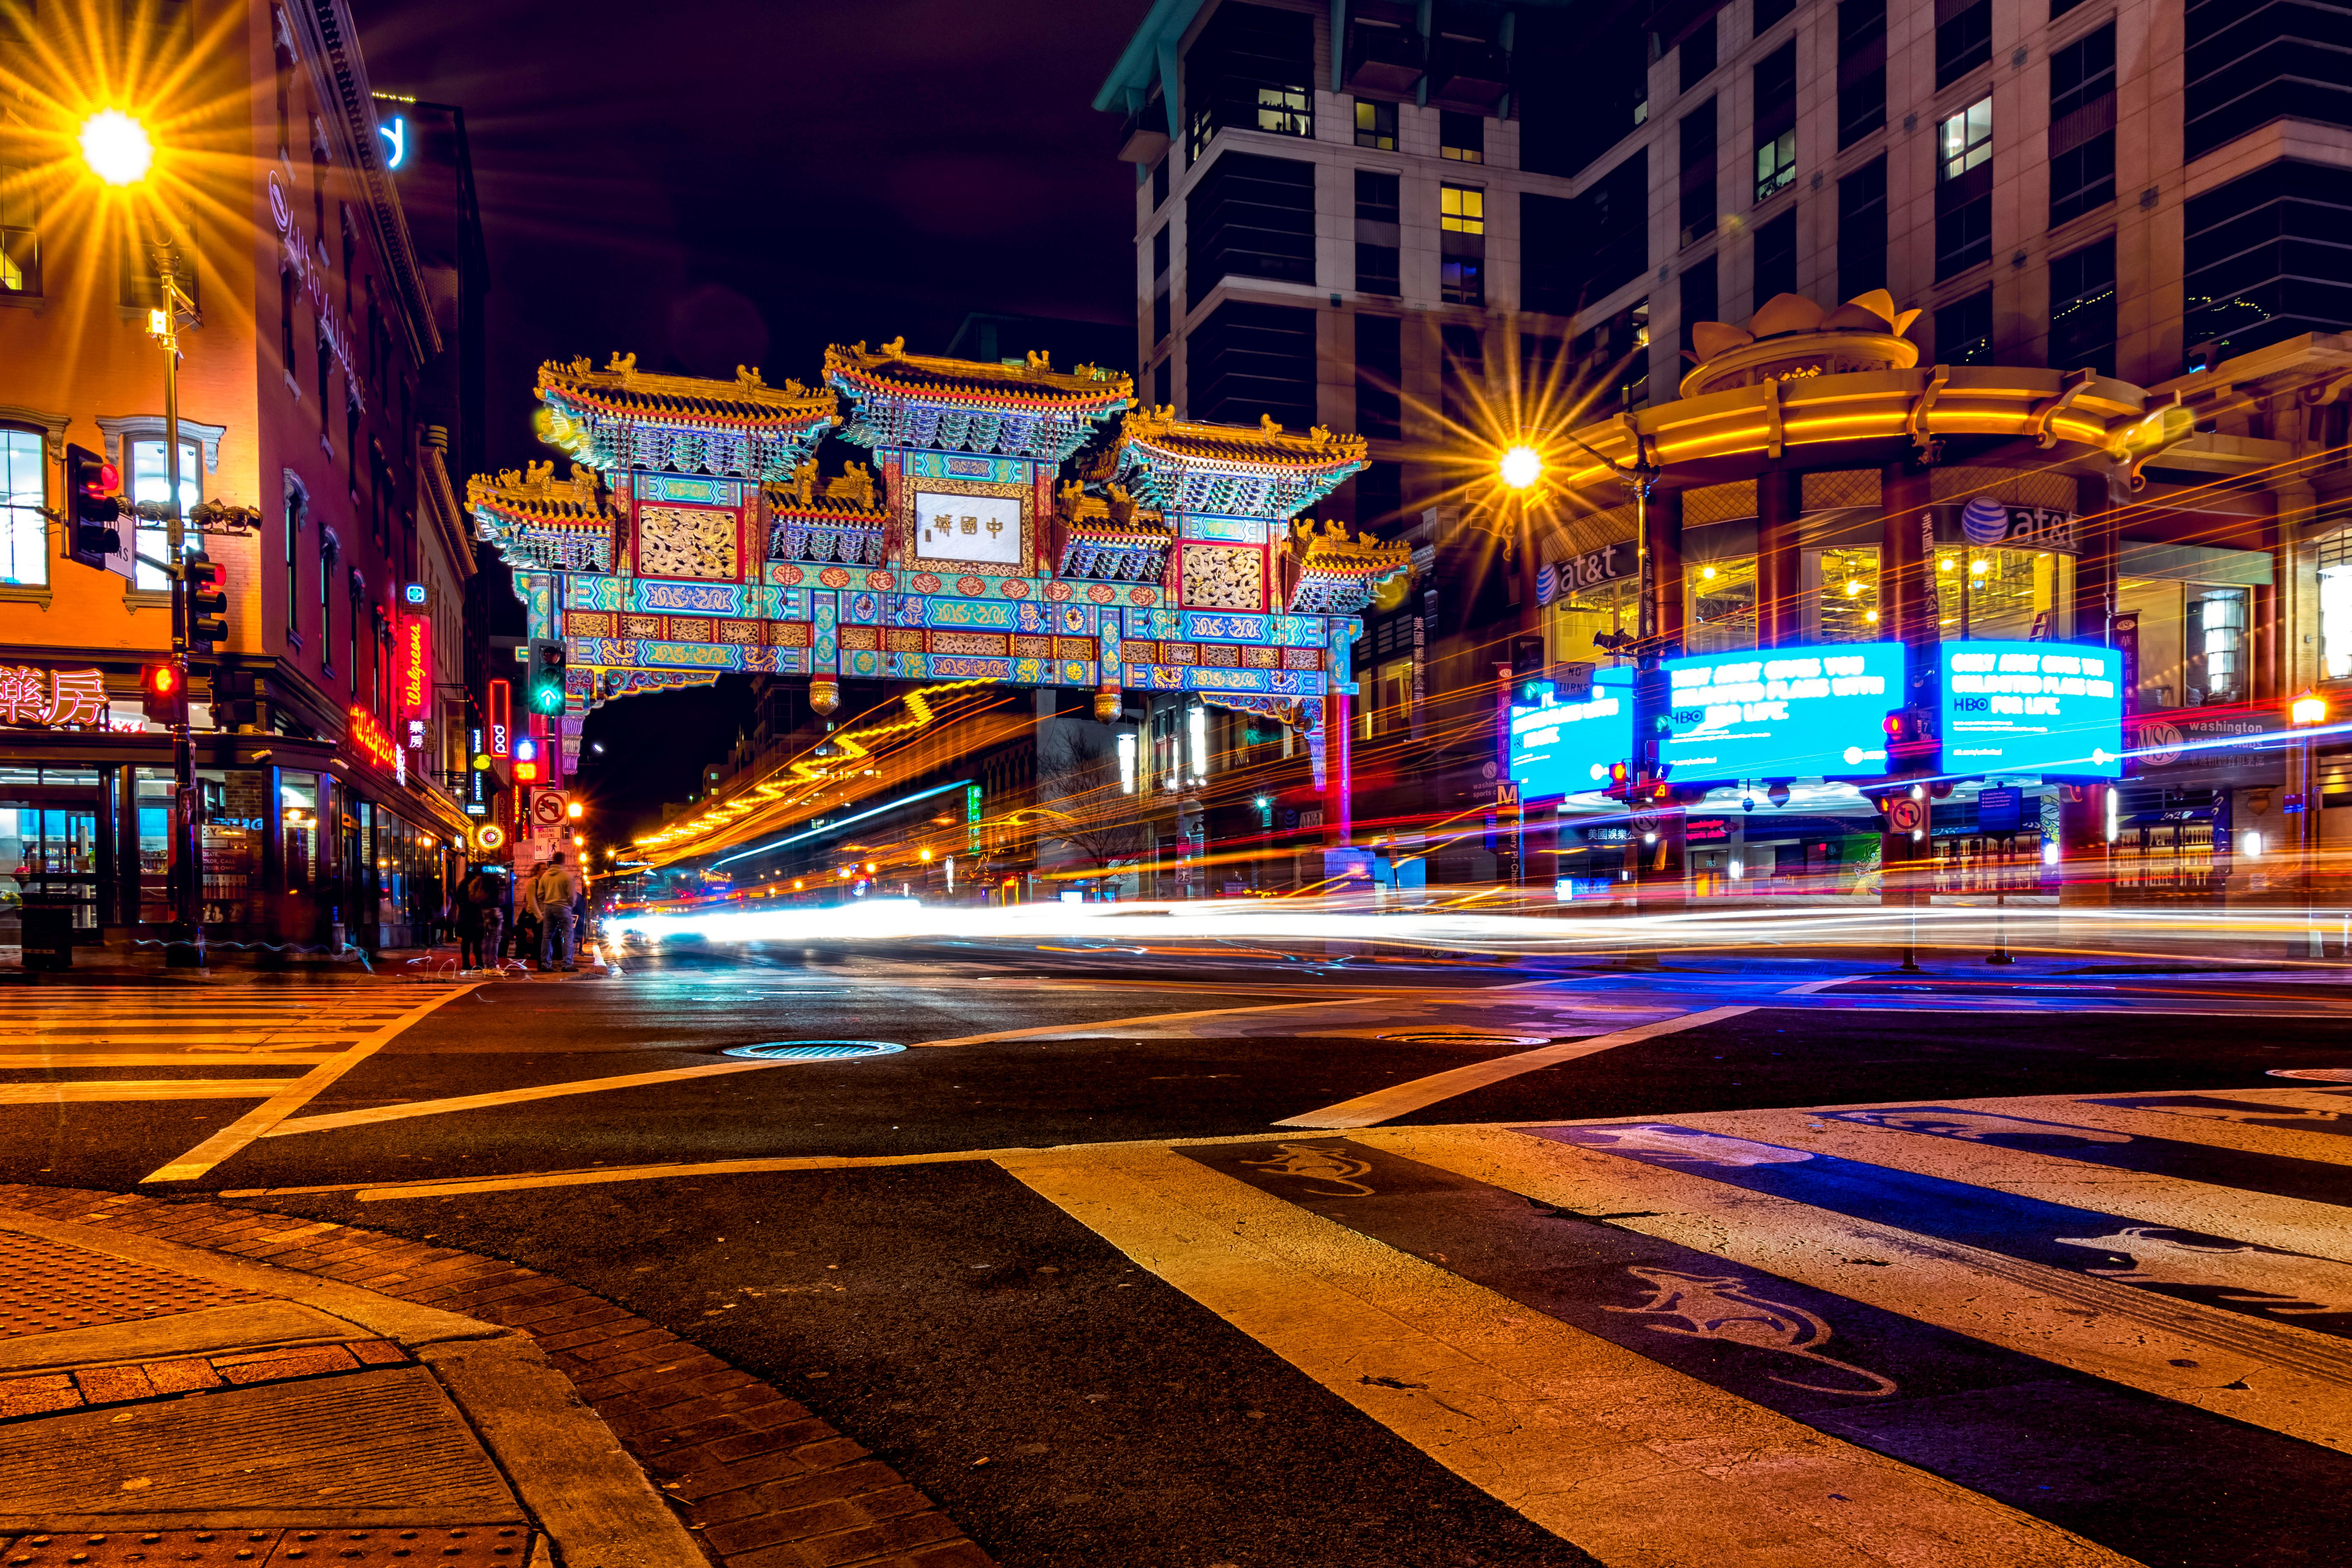 Long exposure of the Friendship Arch in Chinatown. Taken January, 2018. (Image: Adam Brockett){&amp;nbsp;}<p></p>